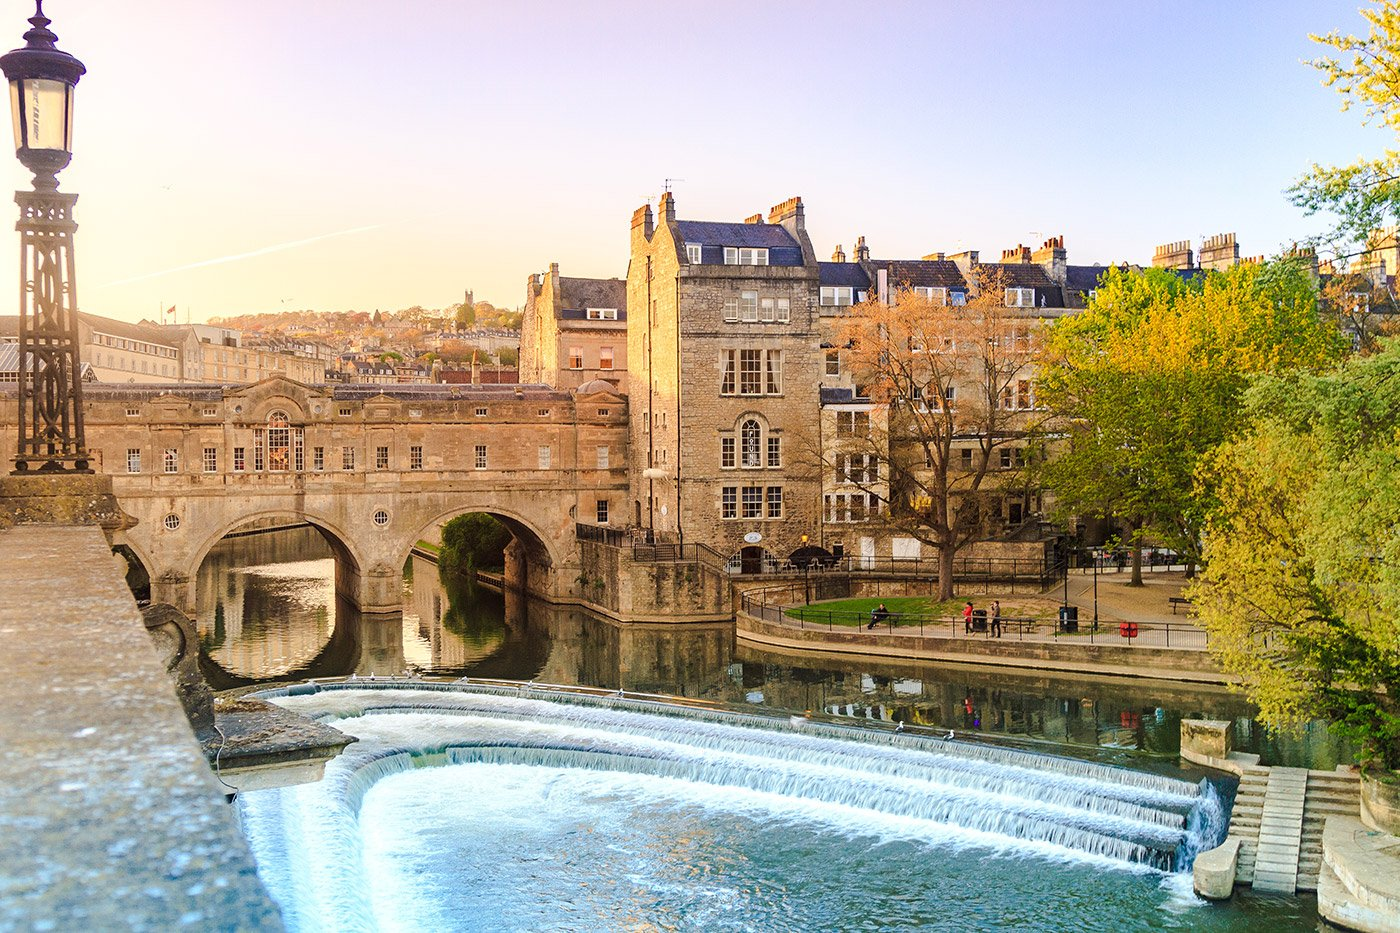 Students Applying for University – Our List of Why You Should Choose Bath